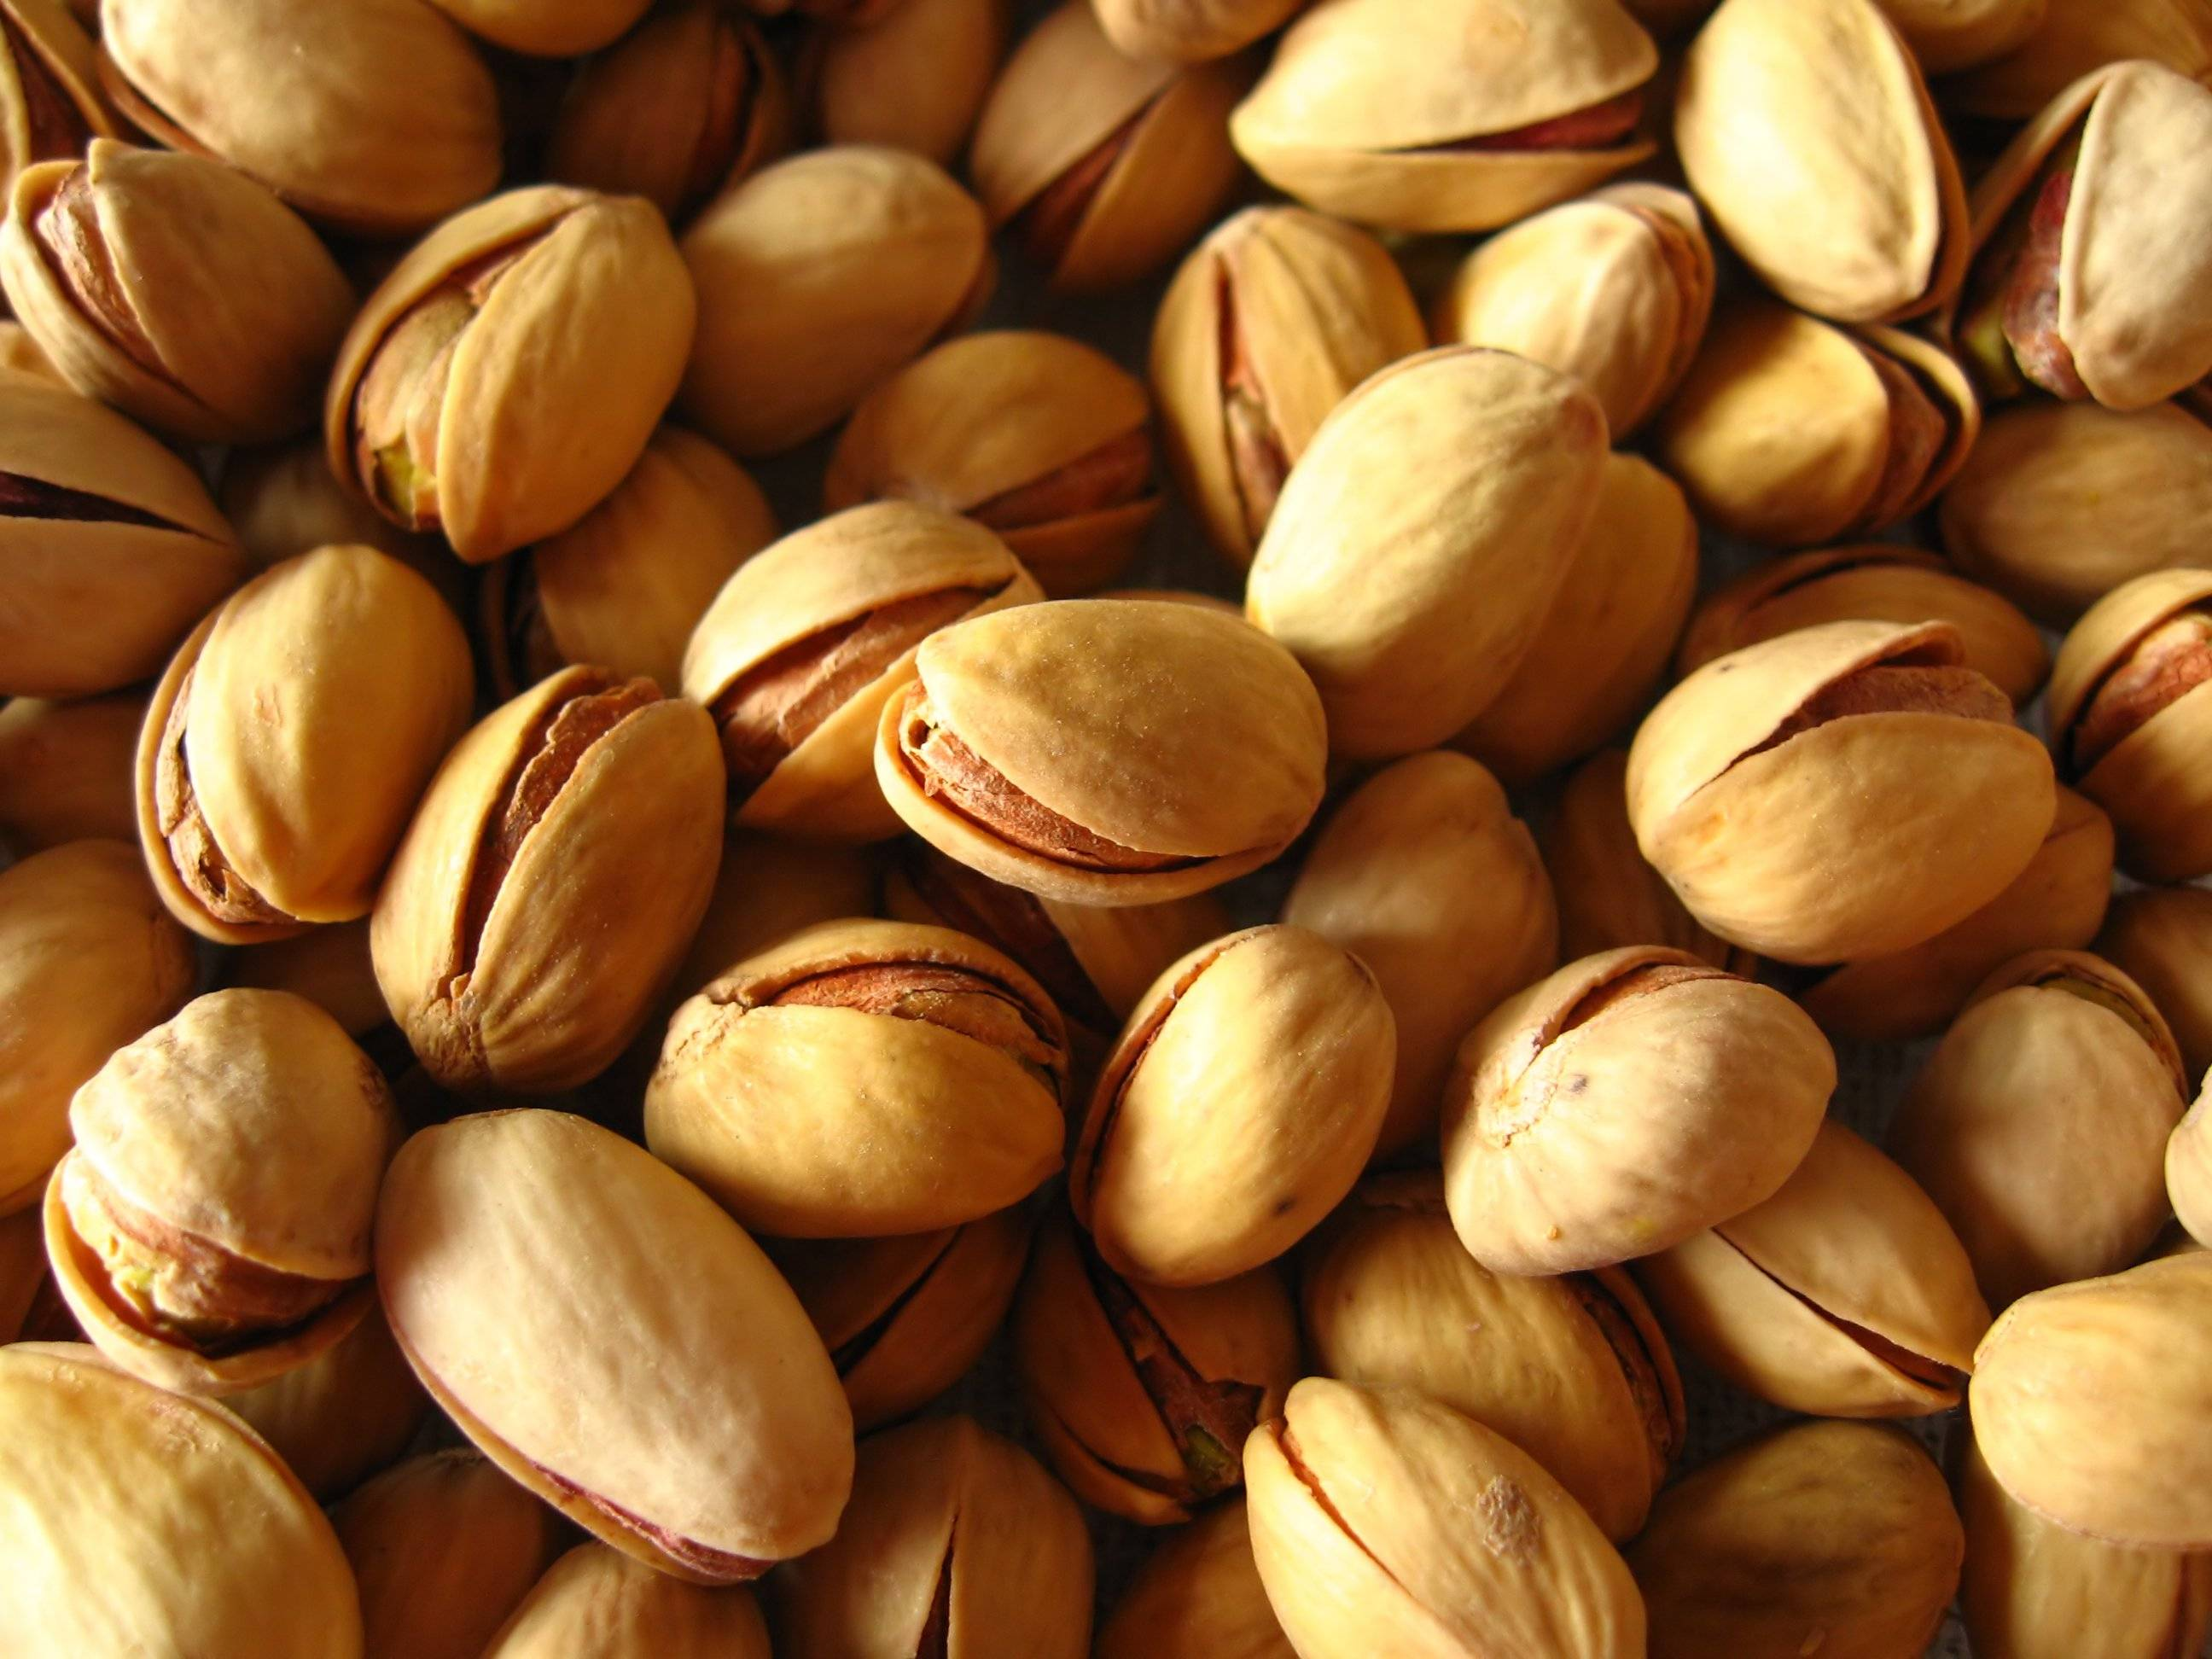 High Quality Resonable Price Iranian Pistachio Nuts